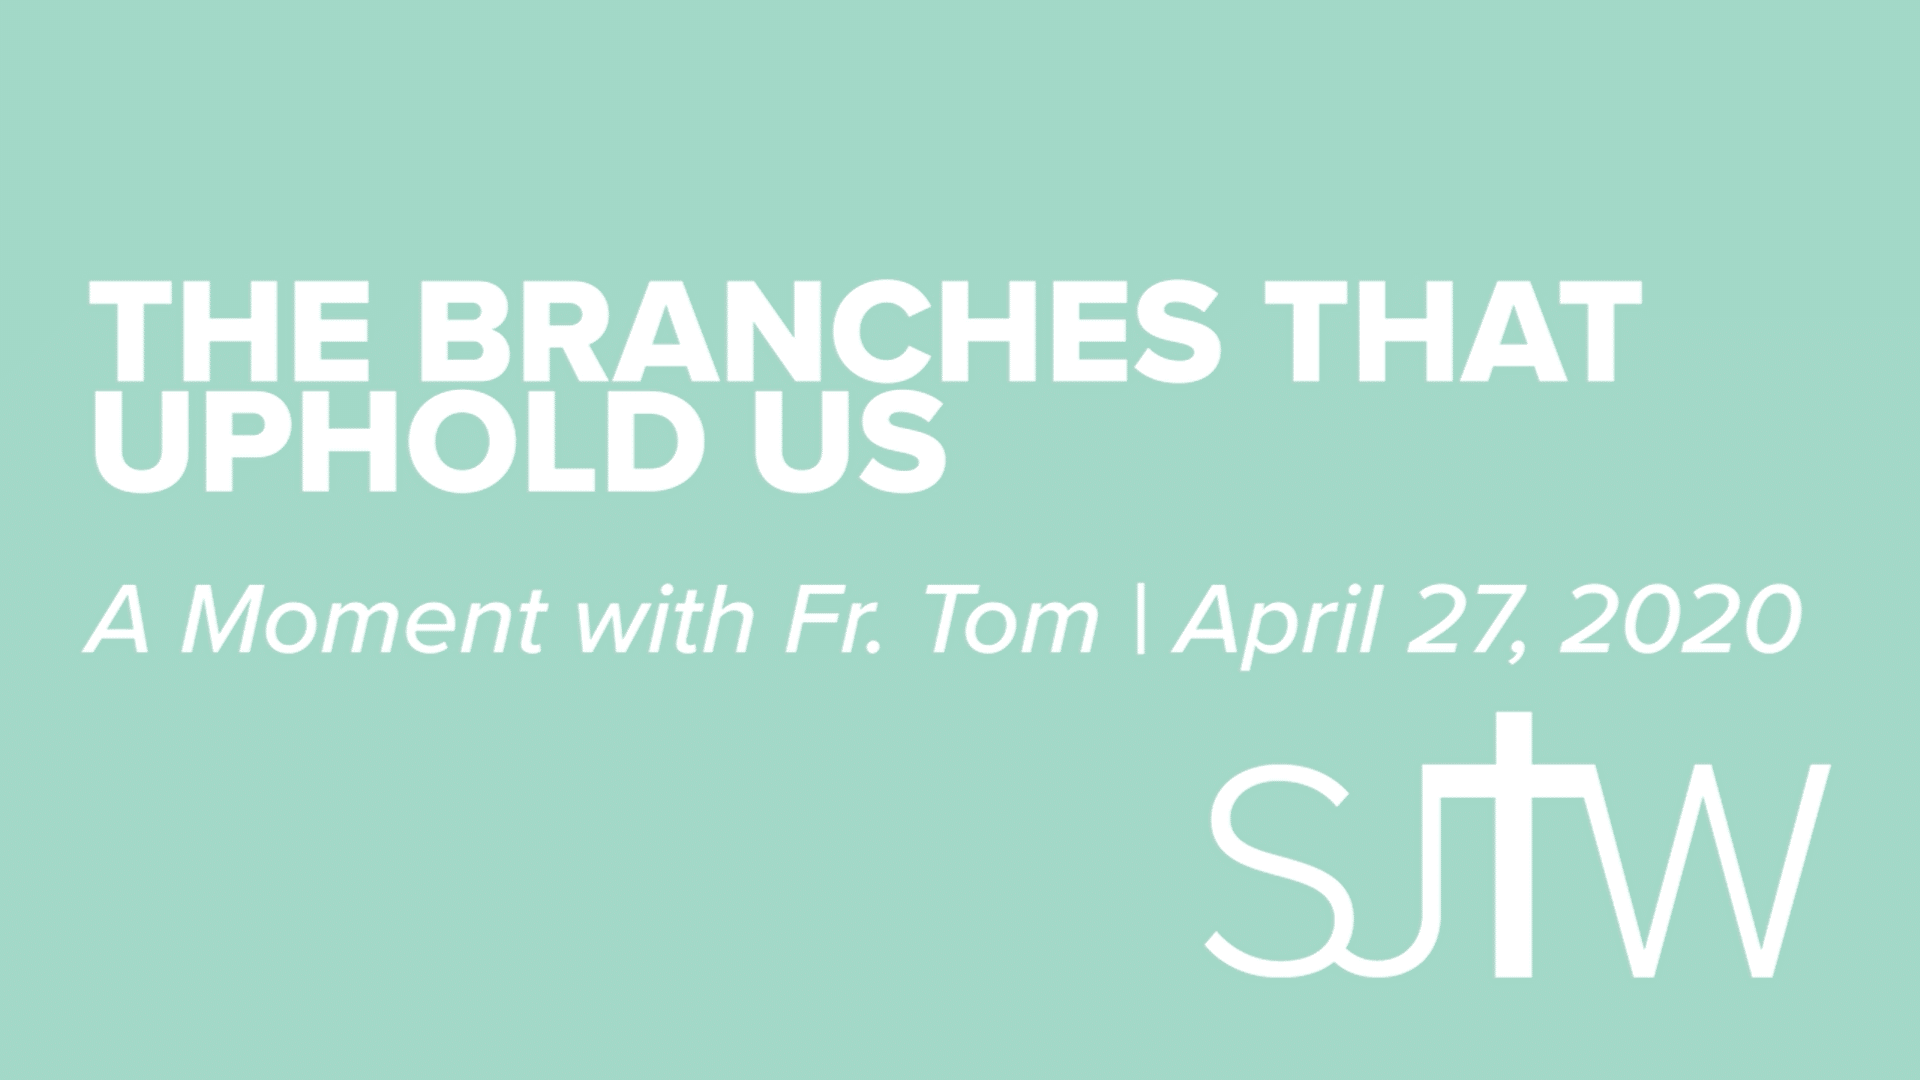 The Branches That Uphold Us | A Moment with Father Tom